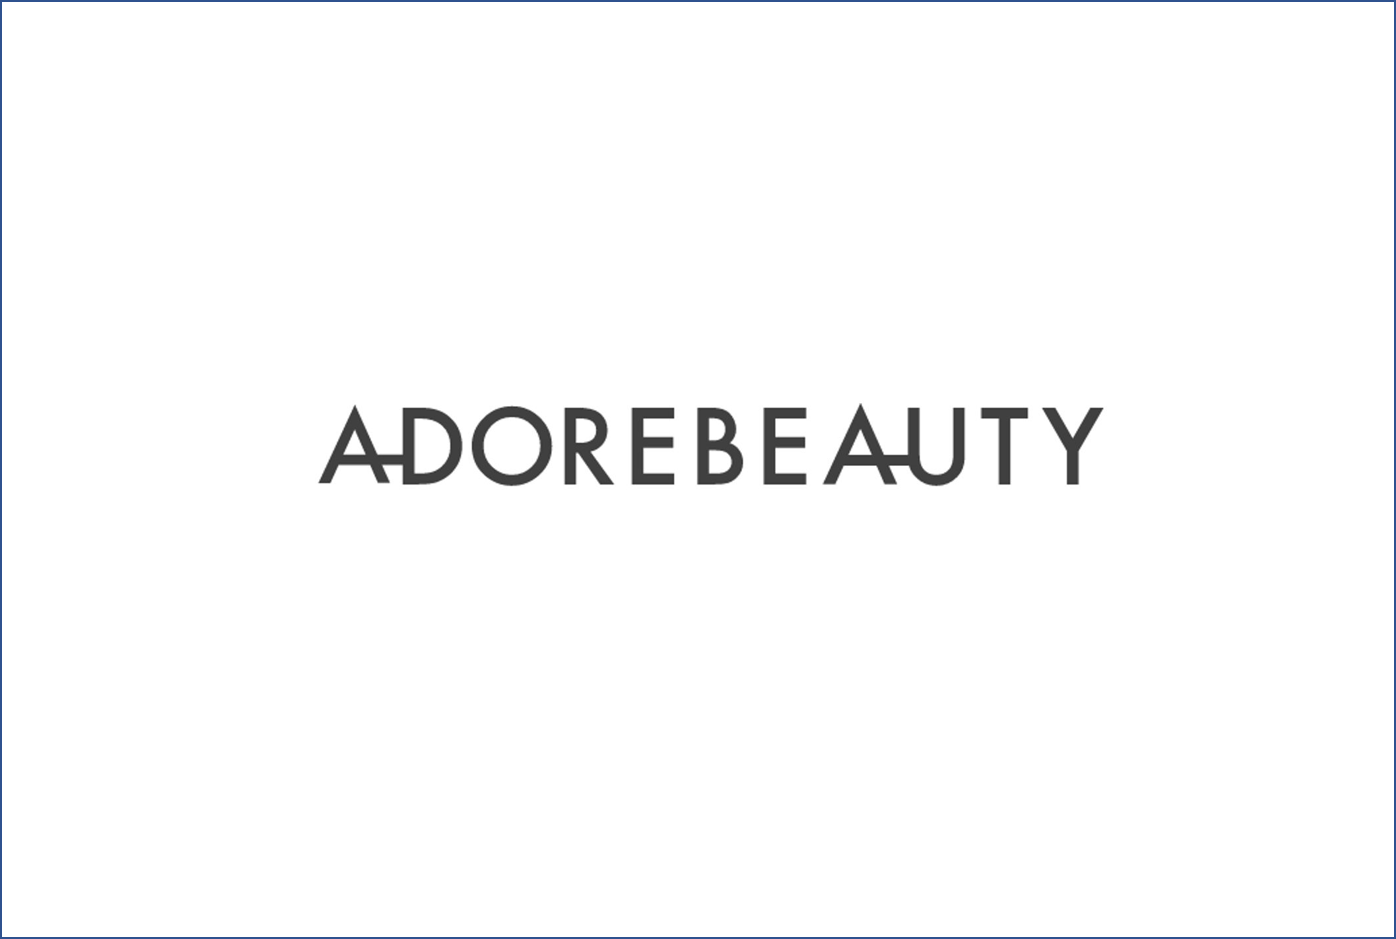 WAREHOUSE AUTOMATION HELPS ADORE BEAUTY CUT COSTS, PACKAGING AND IMPROVE DELIVERY TIMES